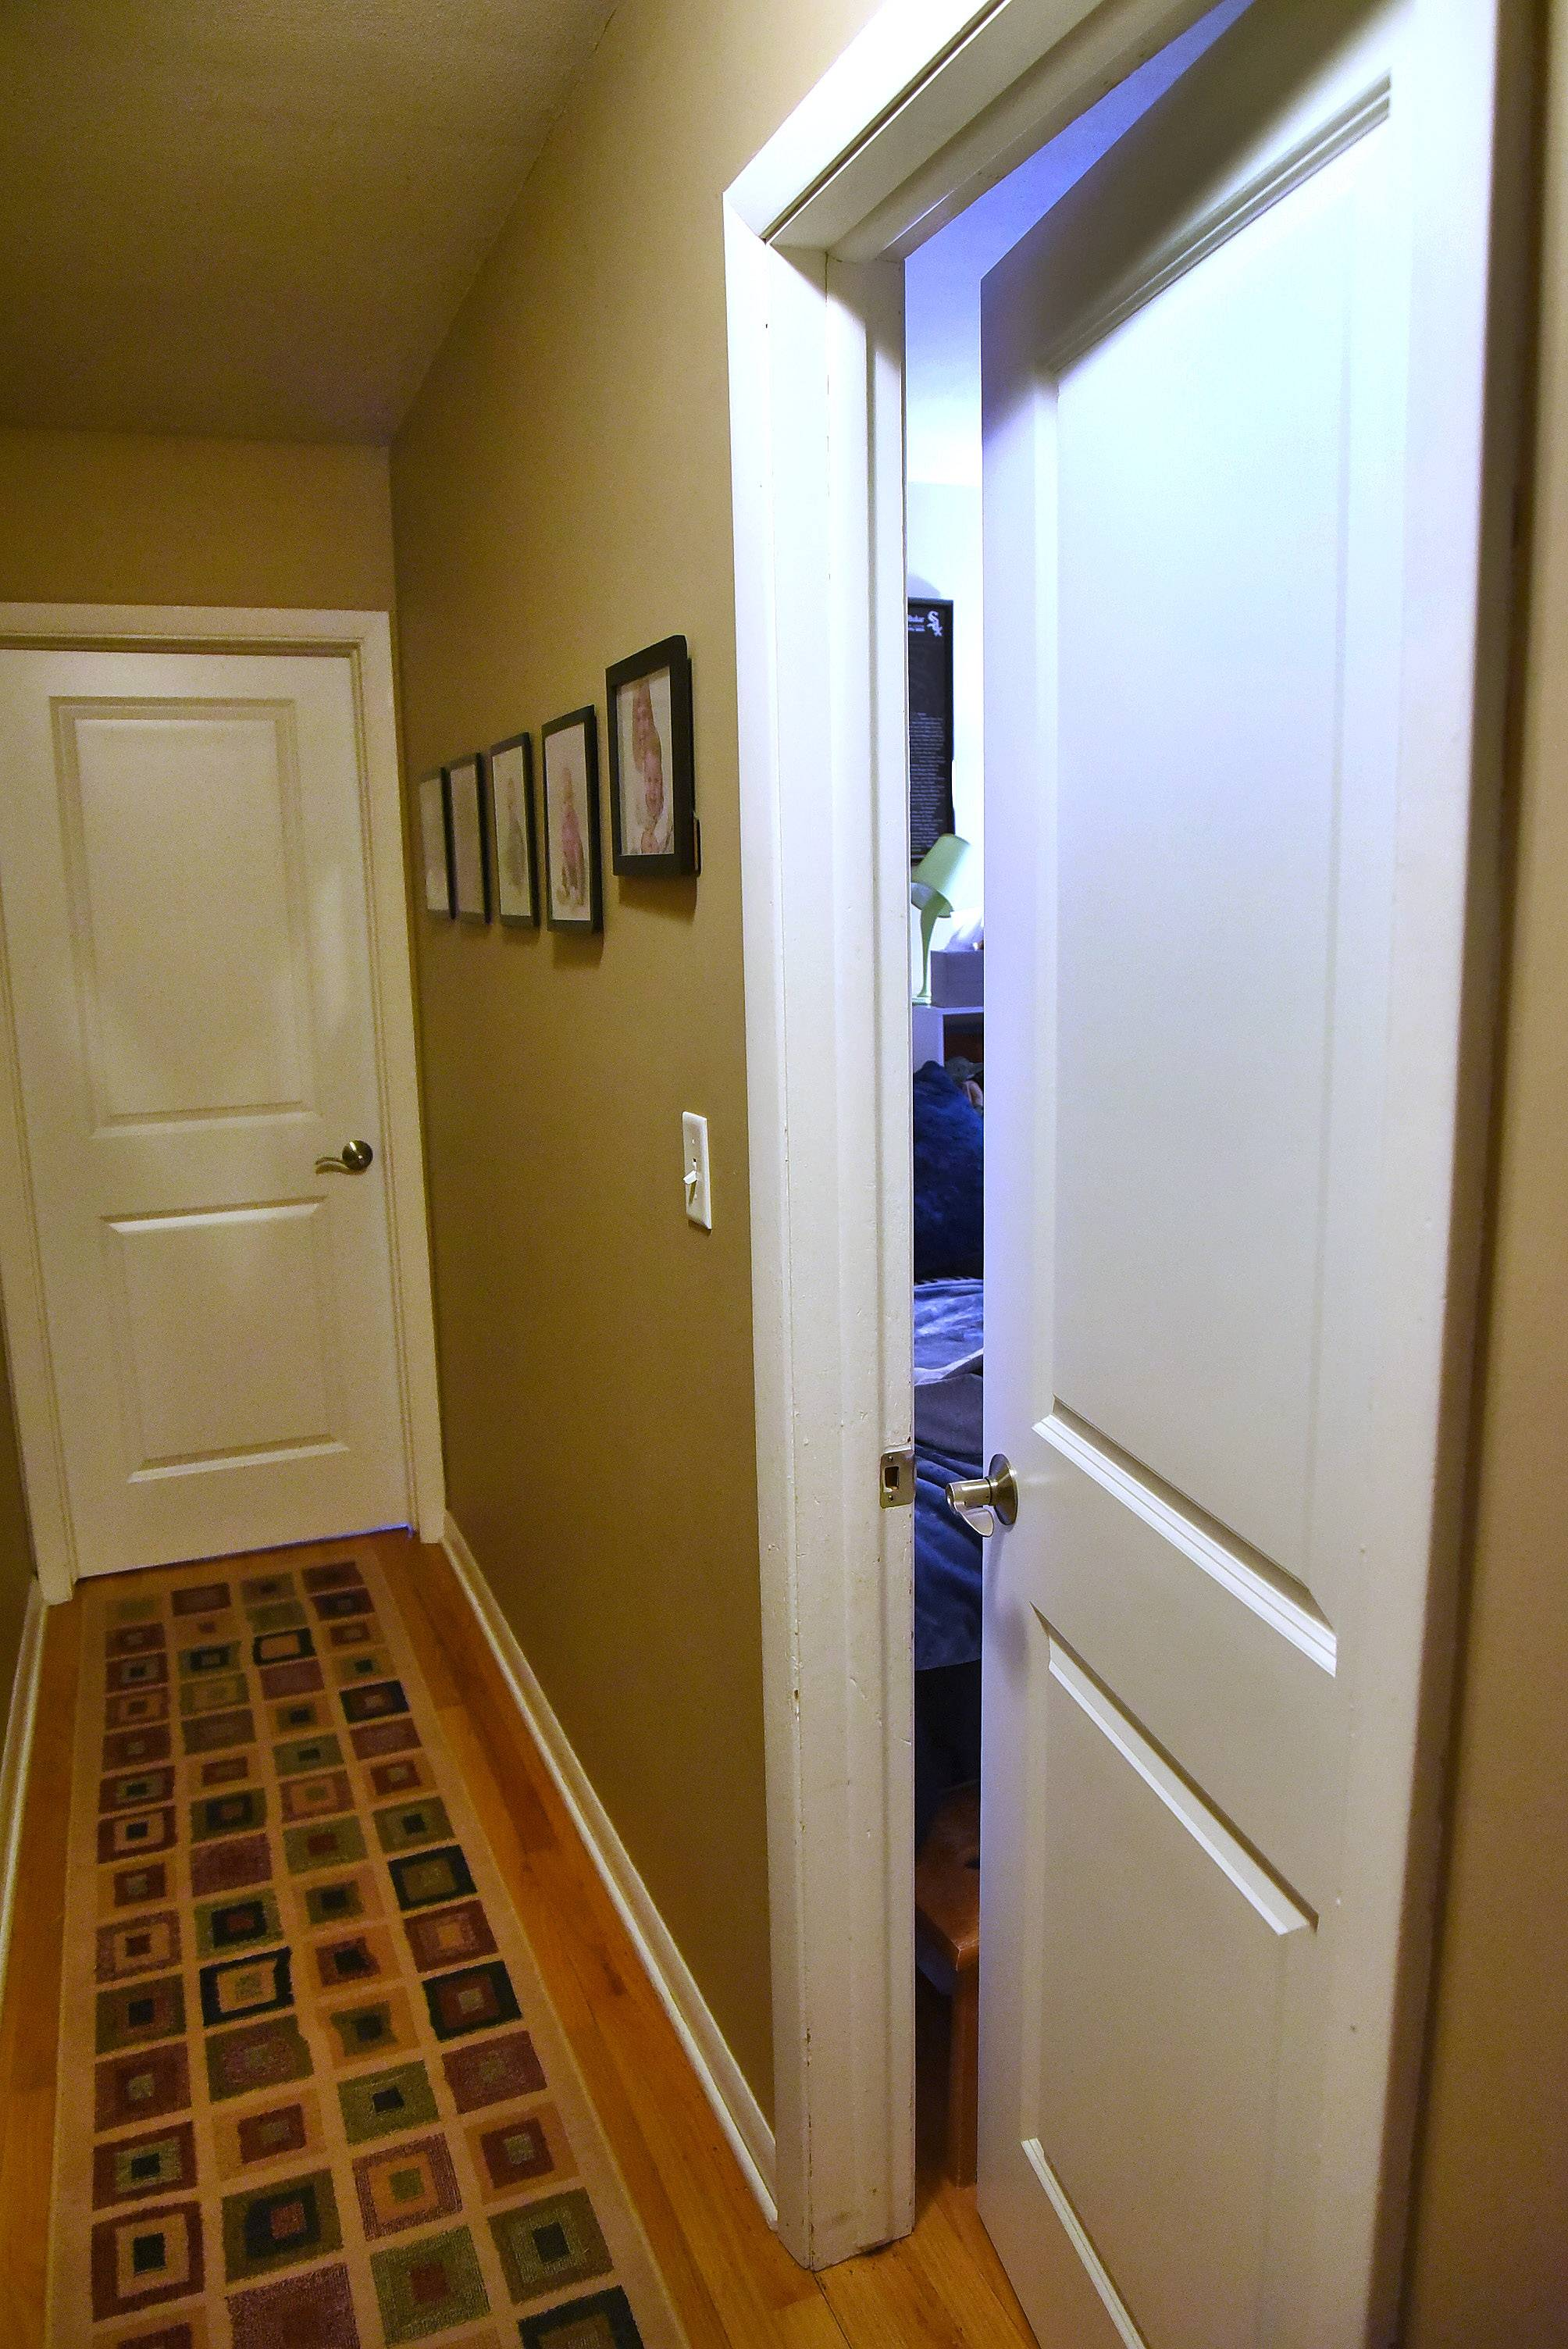 Lisa Piagari of Mount Prospect won new interior doors from HomeStory Chicago. These two-panel doors lead to bedrooms and replace older ones that were very plain, she said.